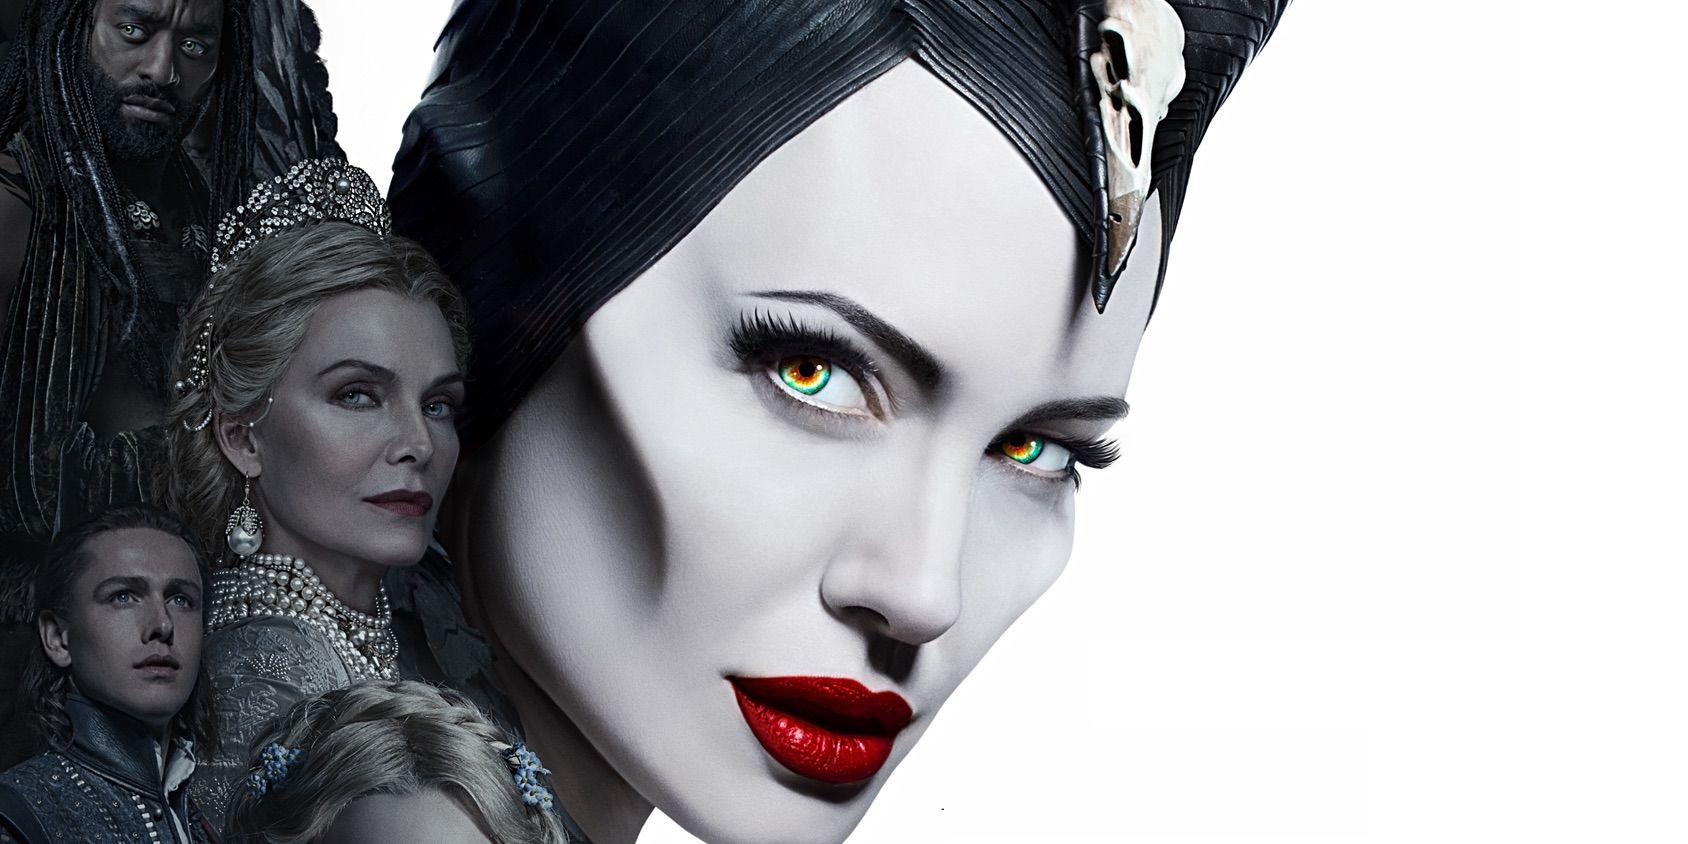 Maleficent 2 Poster Angelina Jolie Is The Mistress Of Evil